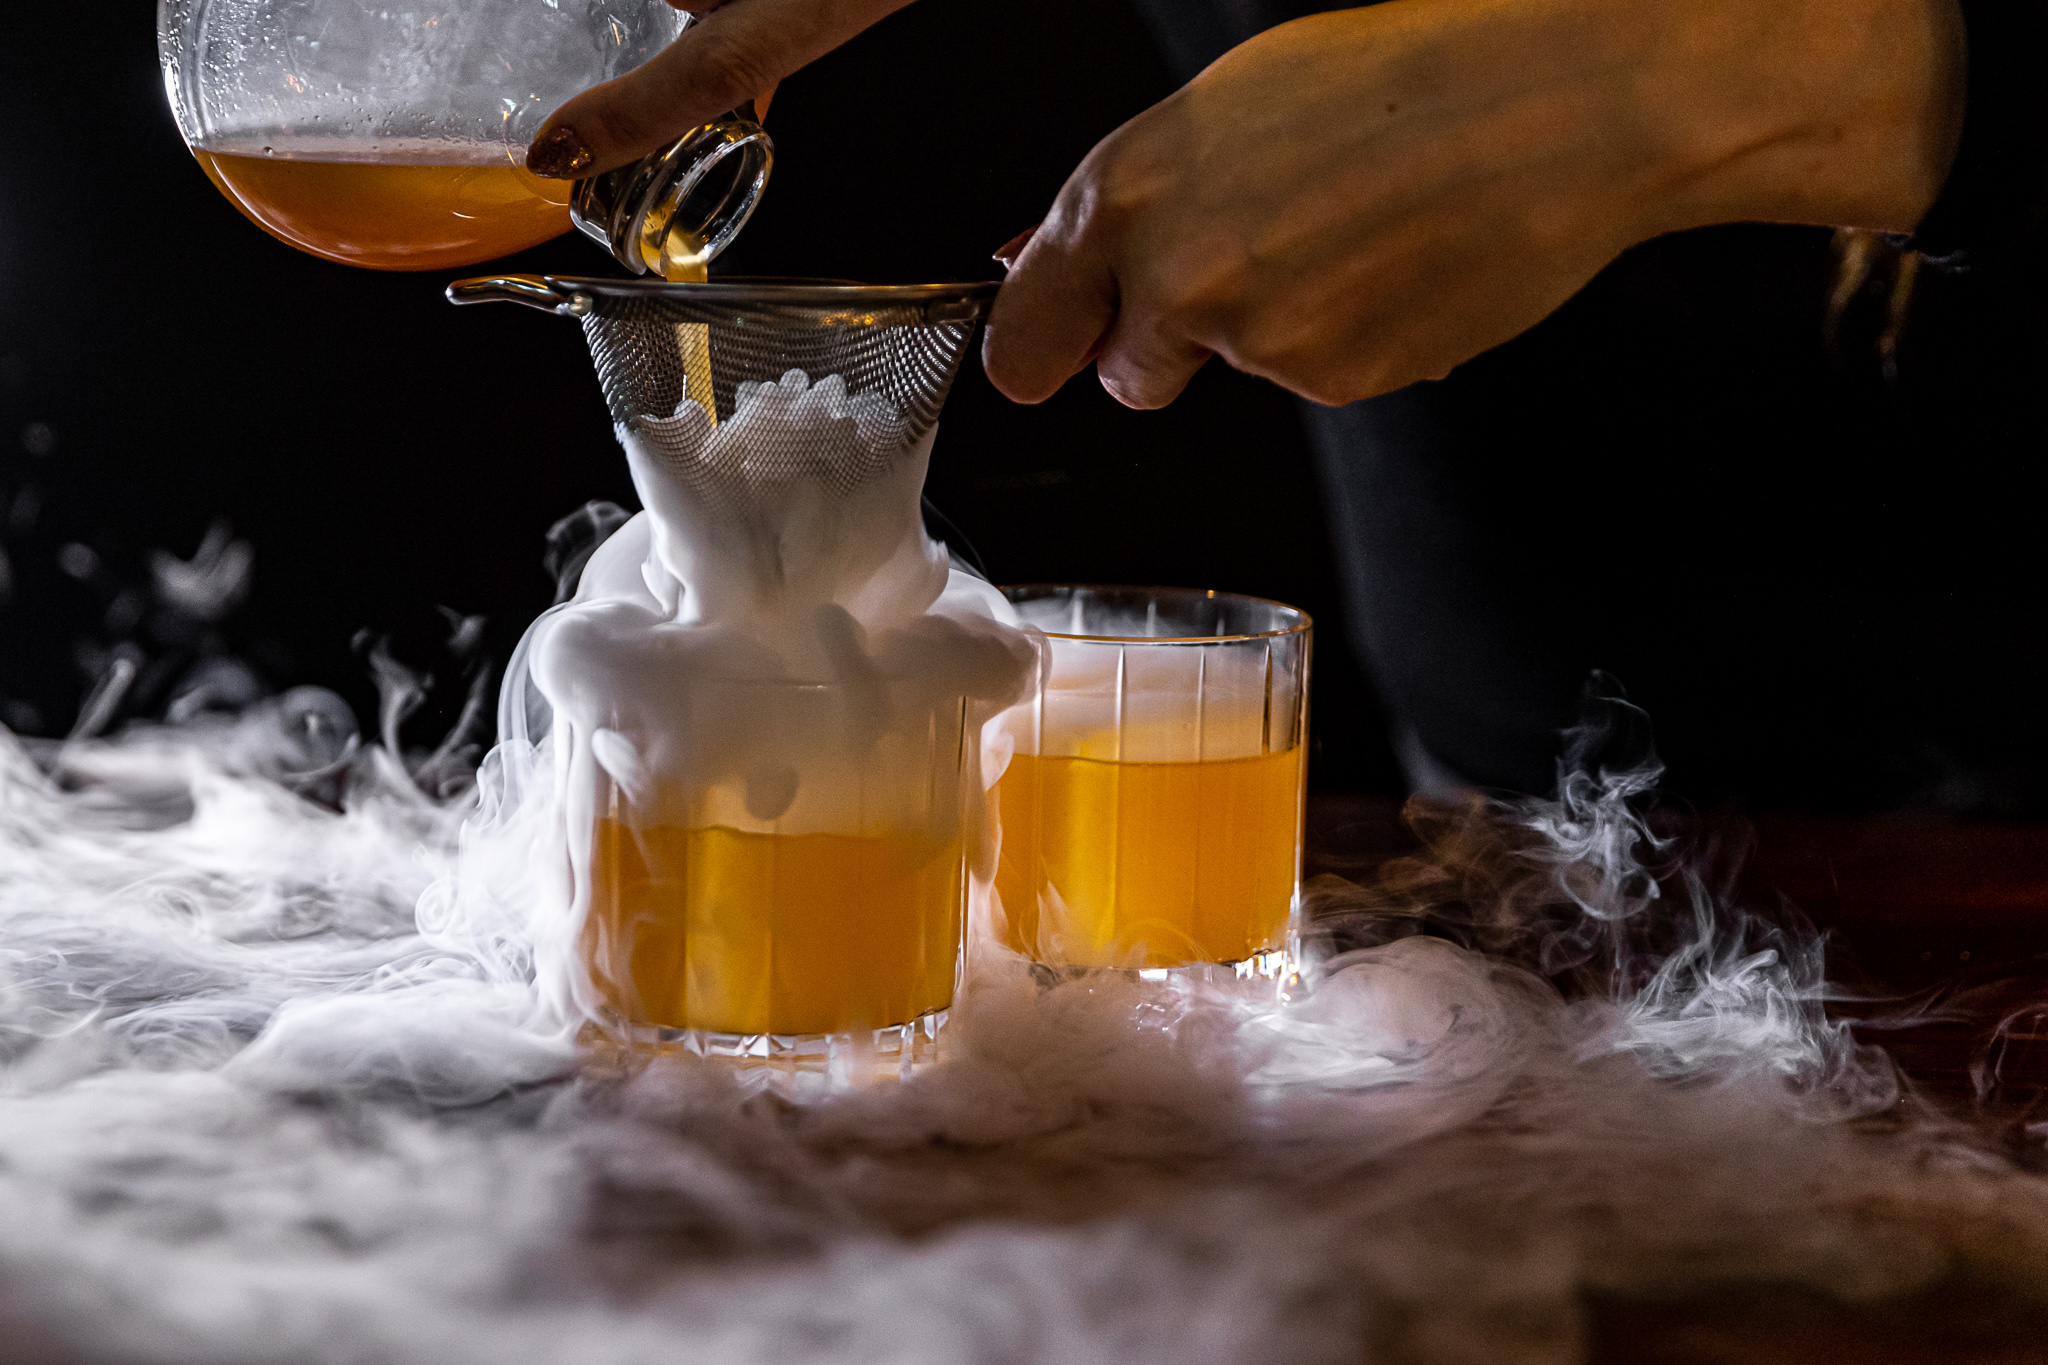 A woman's hand pours yellow liquid from a glass coffee pot through a small strainer and into a tumbler with a large ice cube. Wisps of smoke from dry ice swirl around the glass.